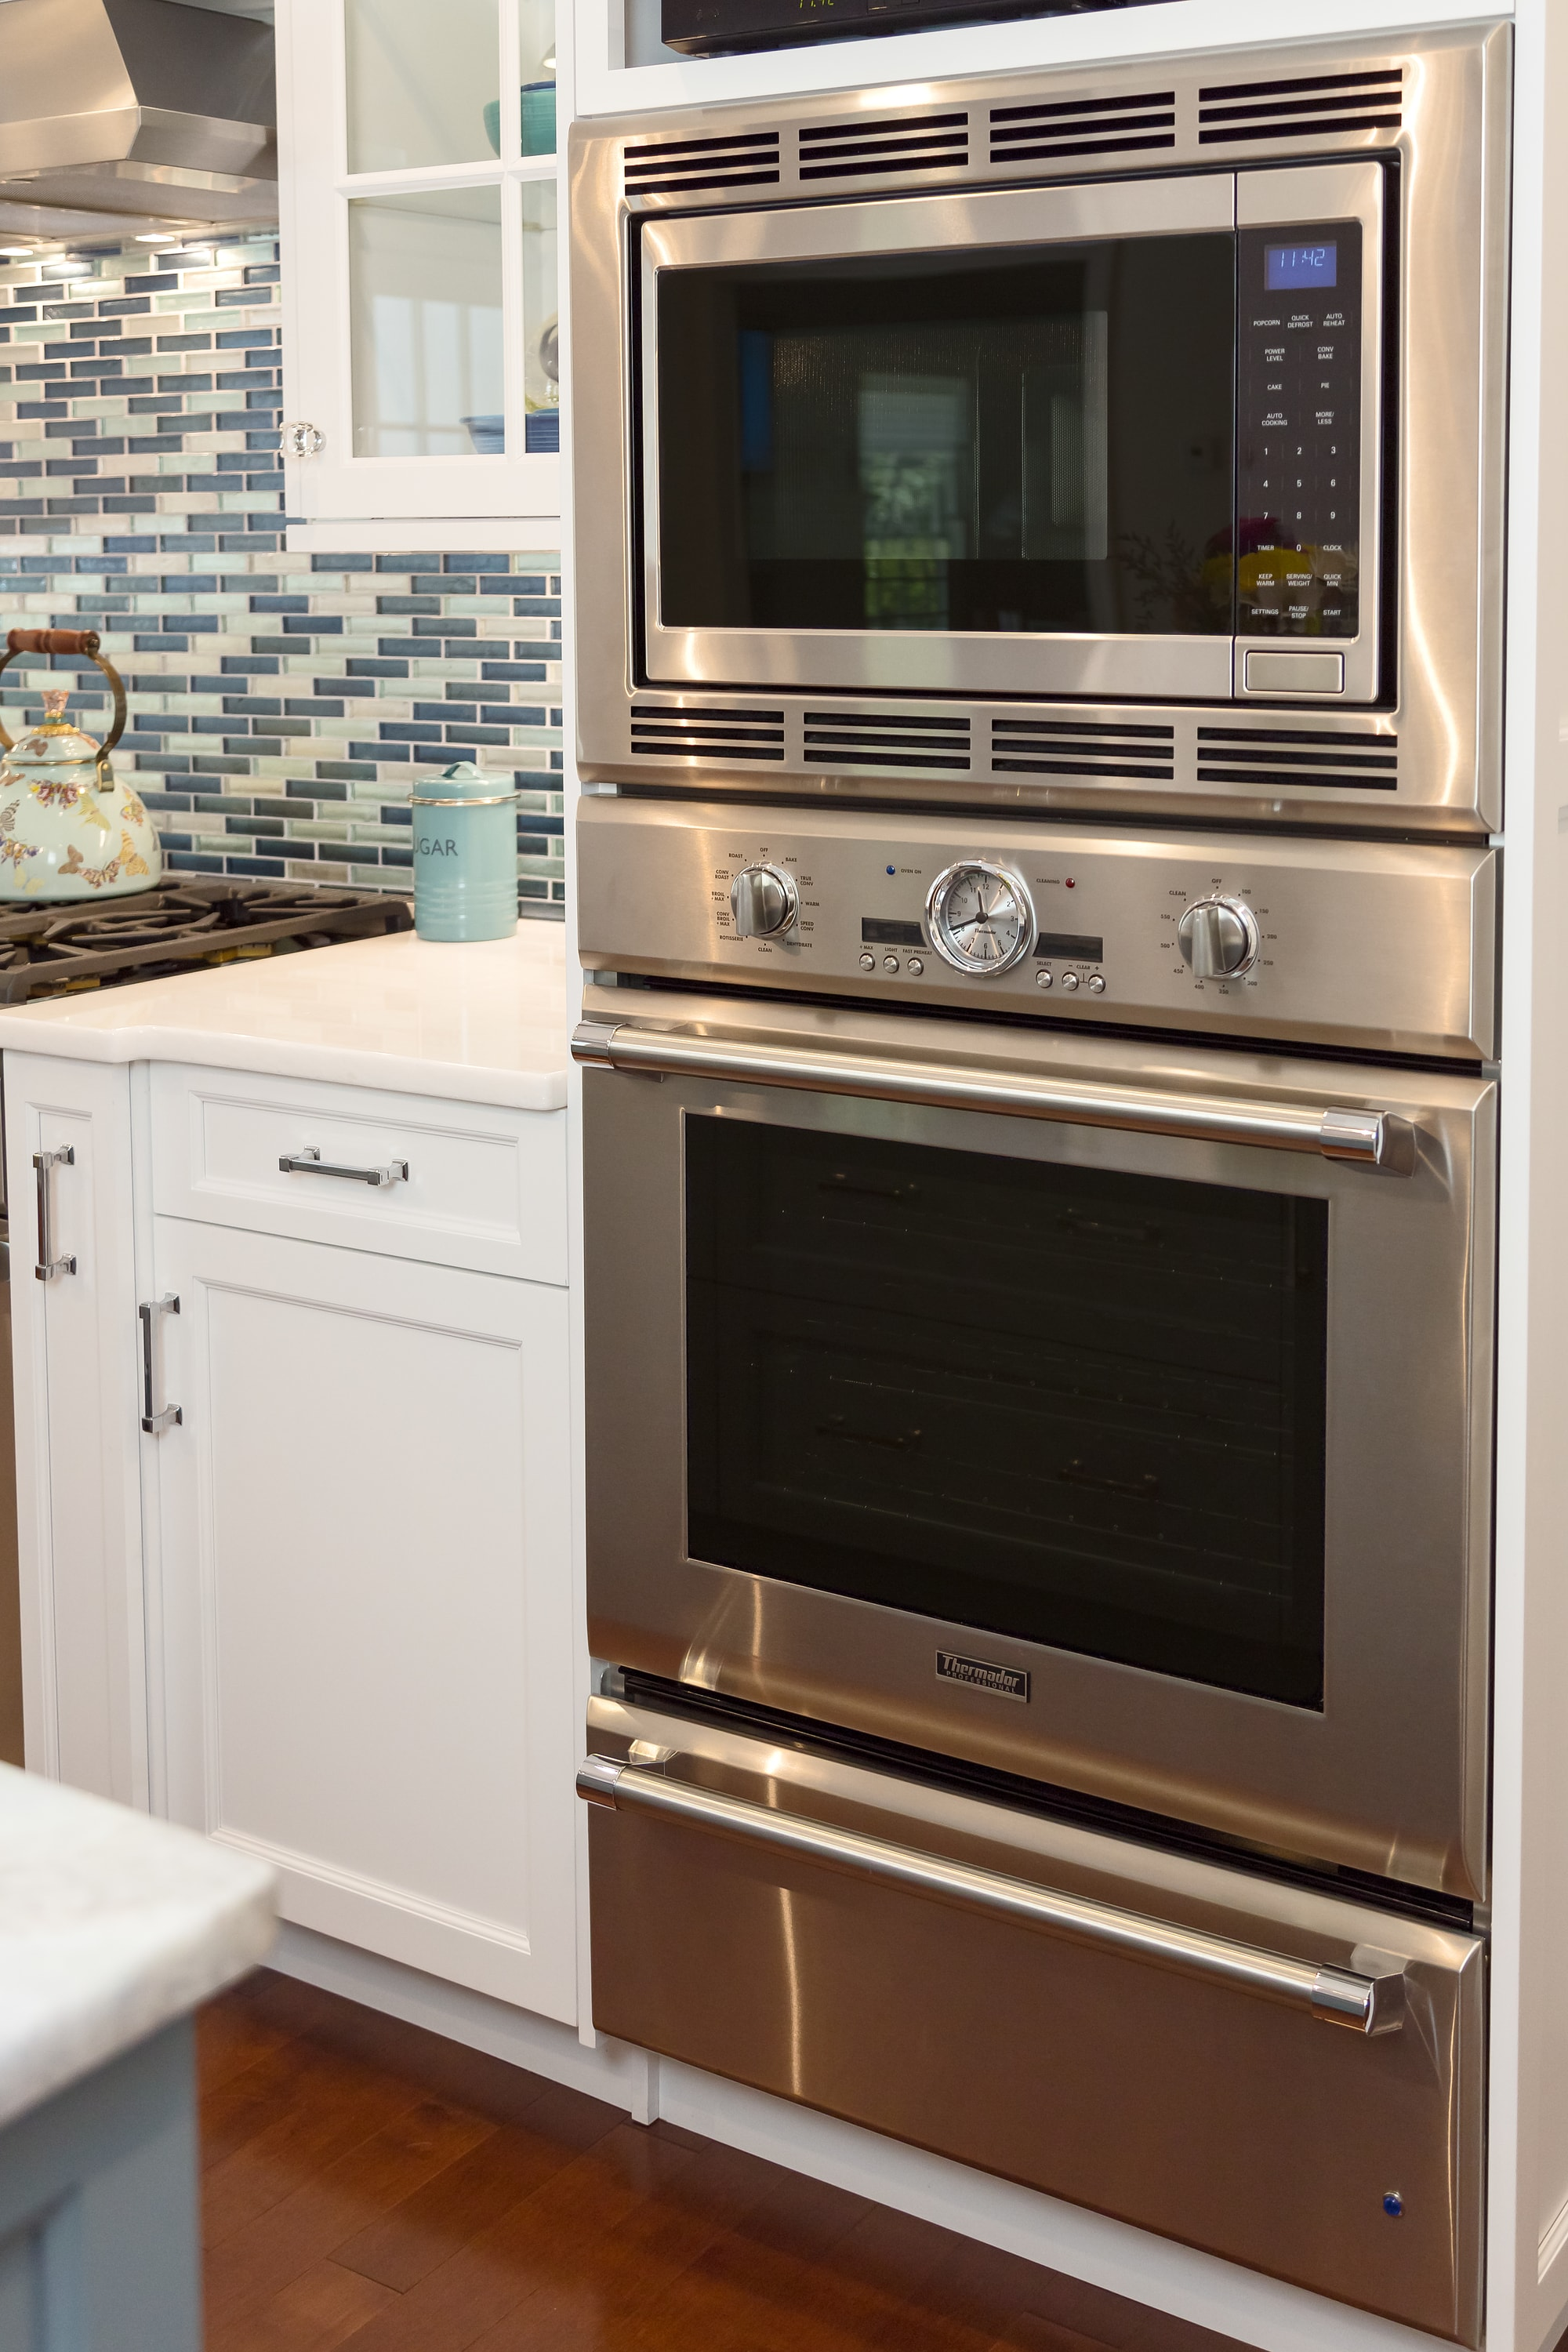 Transitional style kitchen with speed cooking oven